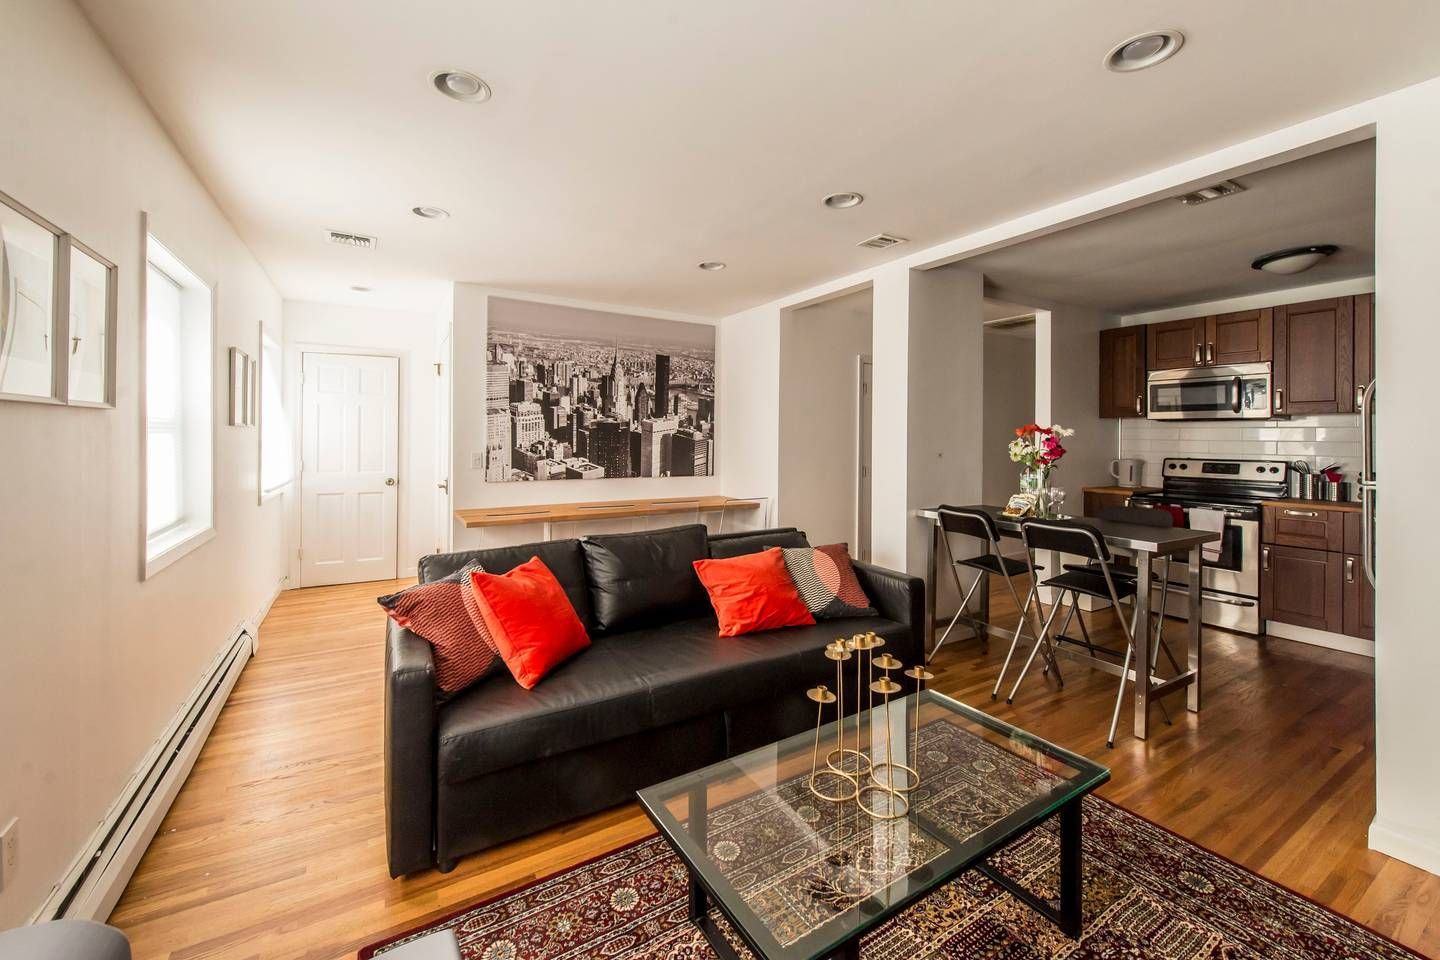 Luxury Modern 3 Br 2bath Apartment Close To Nyc Apartments For Rent In Jersey City New Jersey United Stat Nyc Apartment Renting A House Apartments For Rent